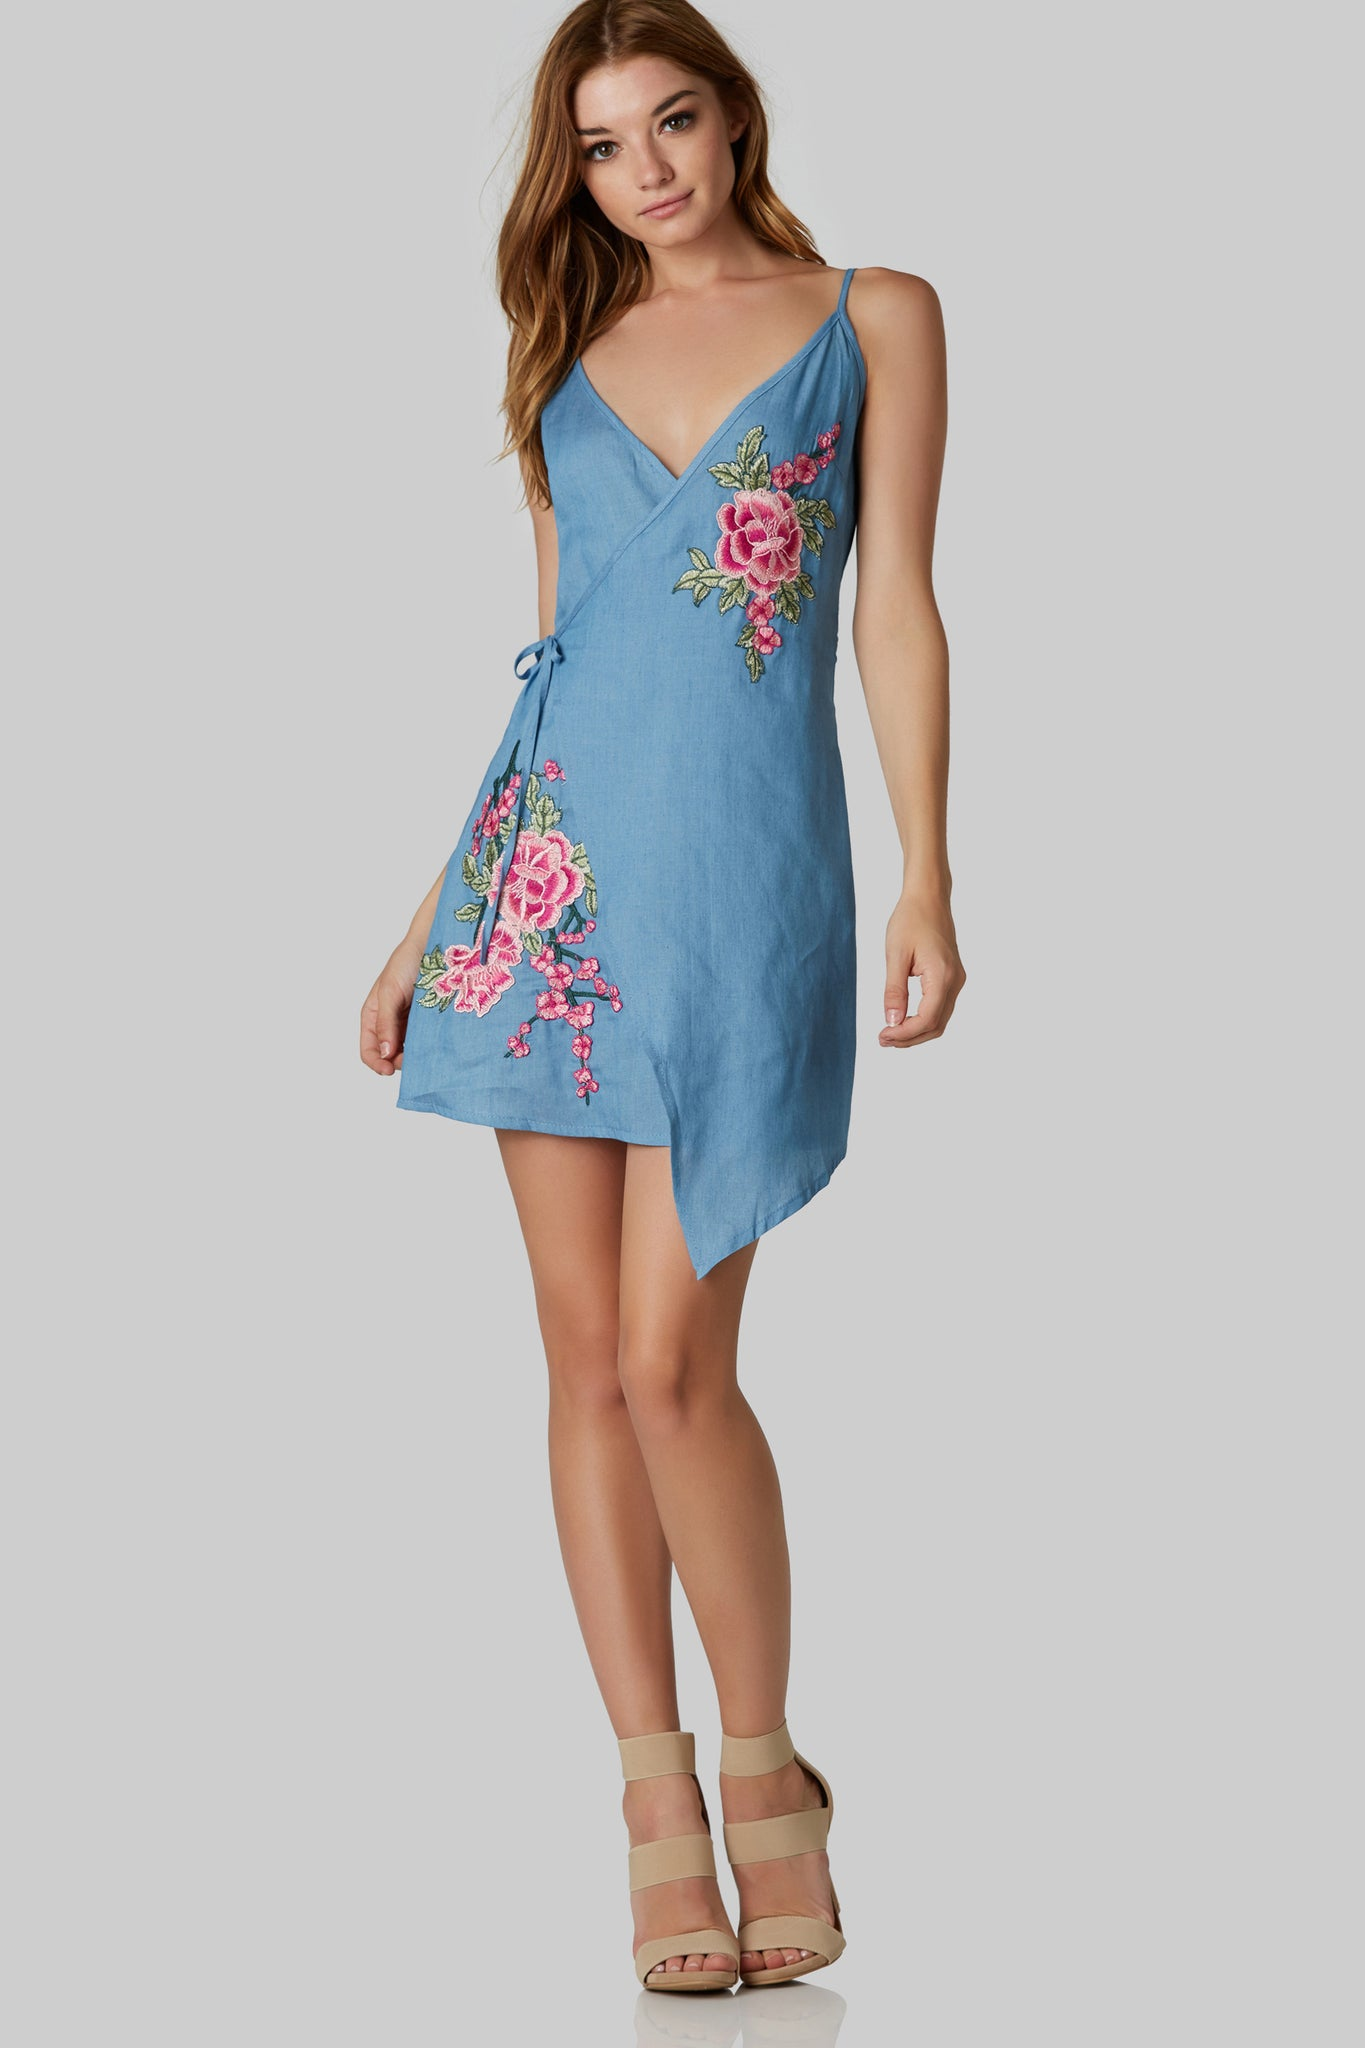 Sleeveless chambray mini dress with front wrap closure. Colorful floral patches and adjuistable should straps.